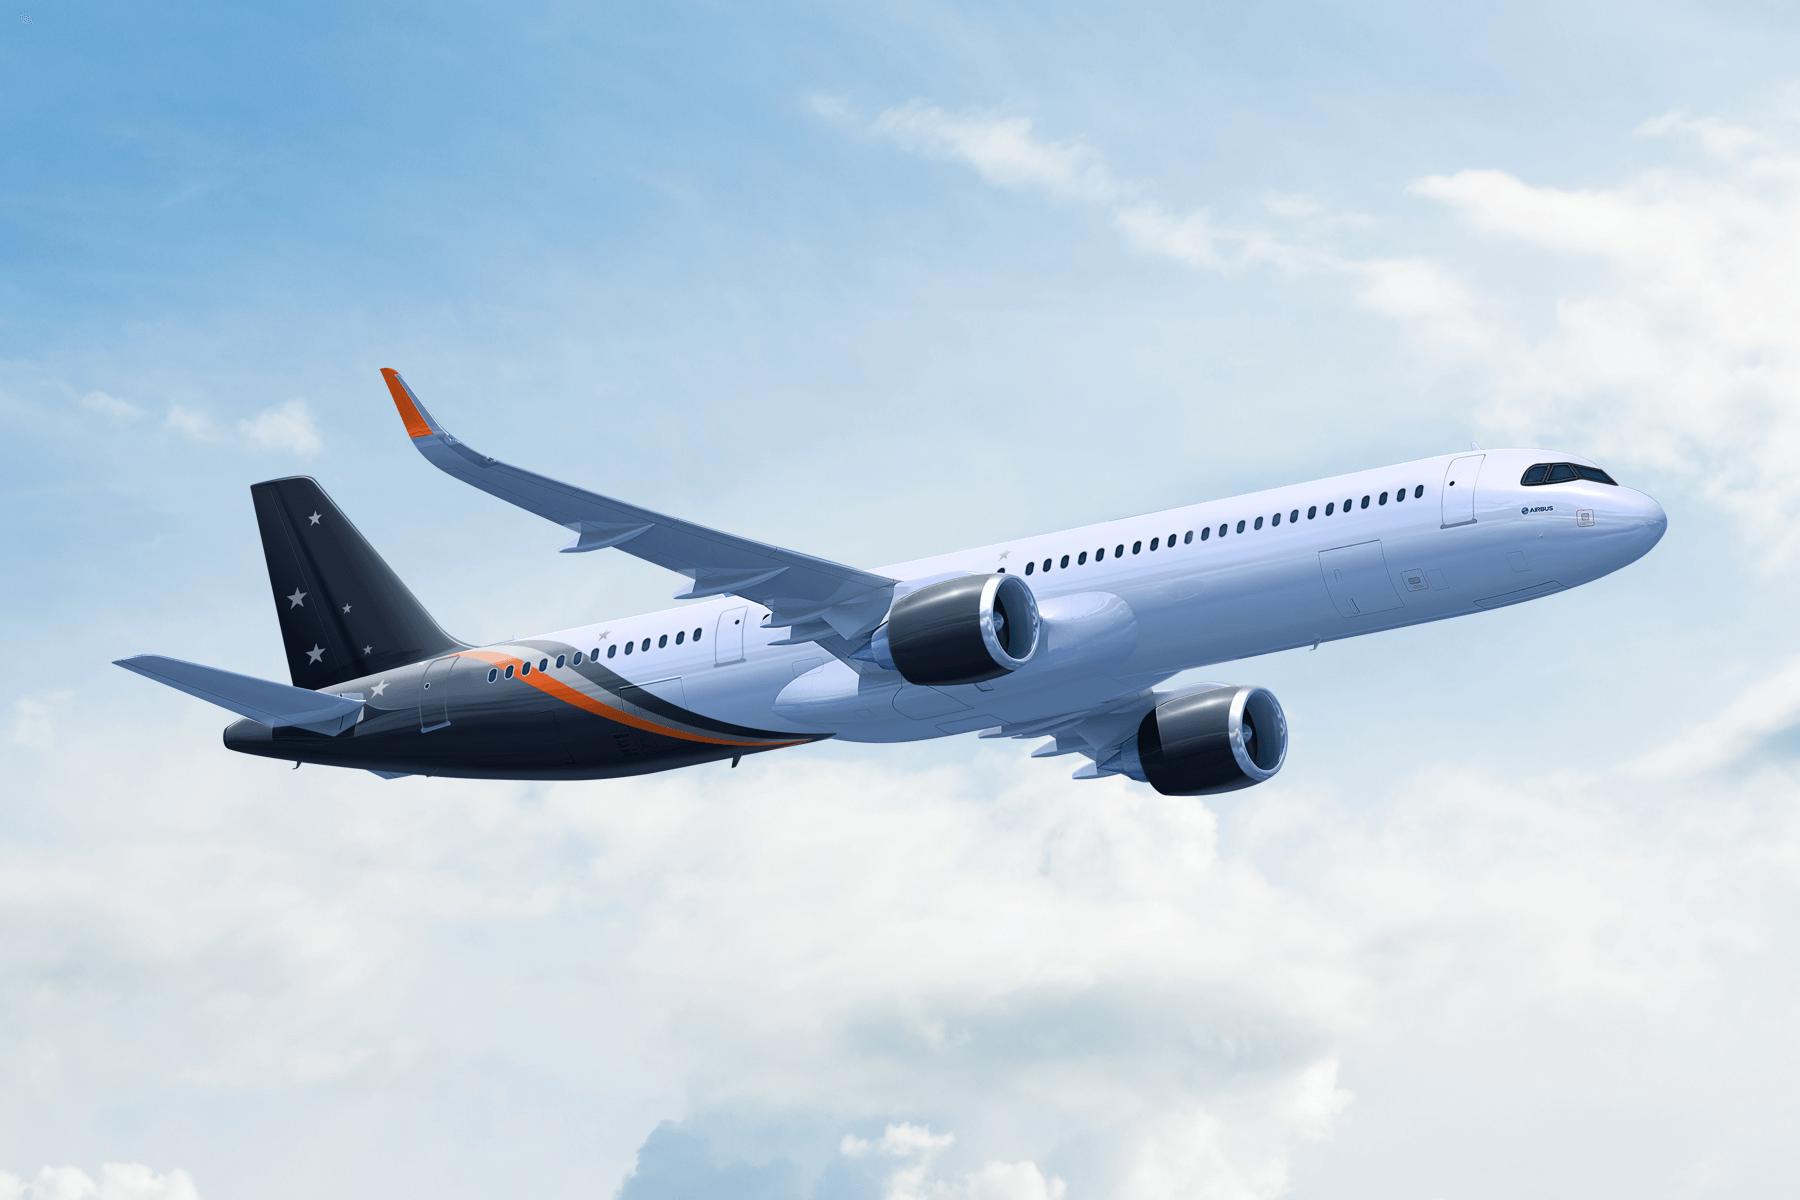 UK Charter Operator Titan Takes Delivery Of Its First A321LR